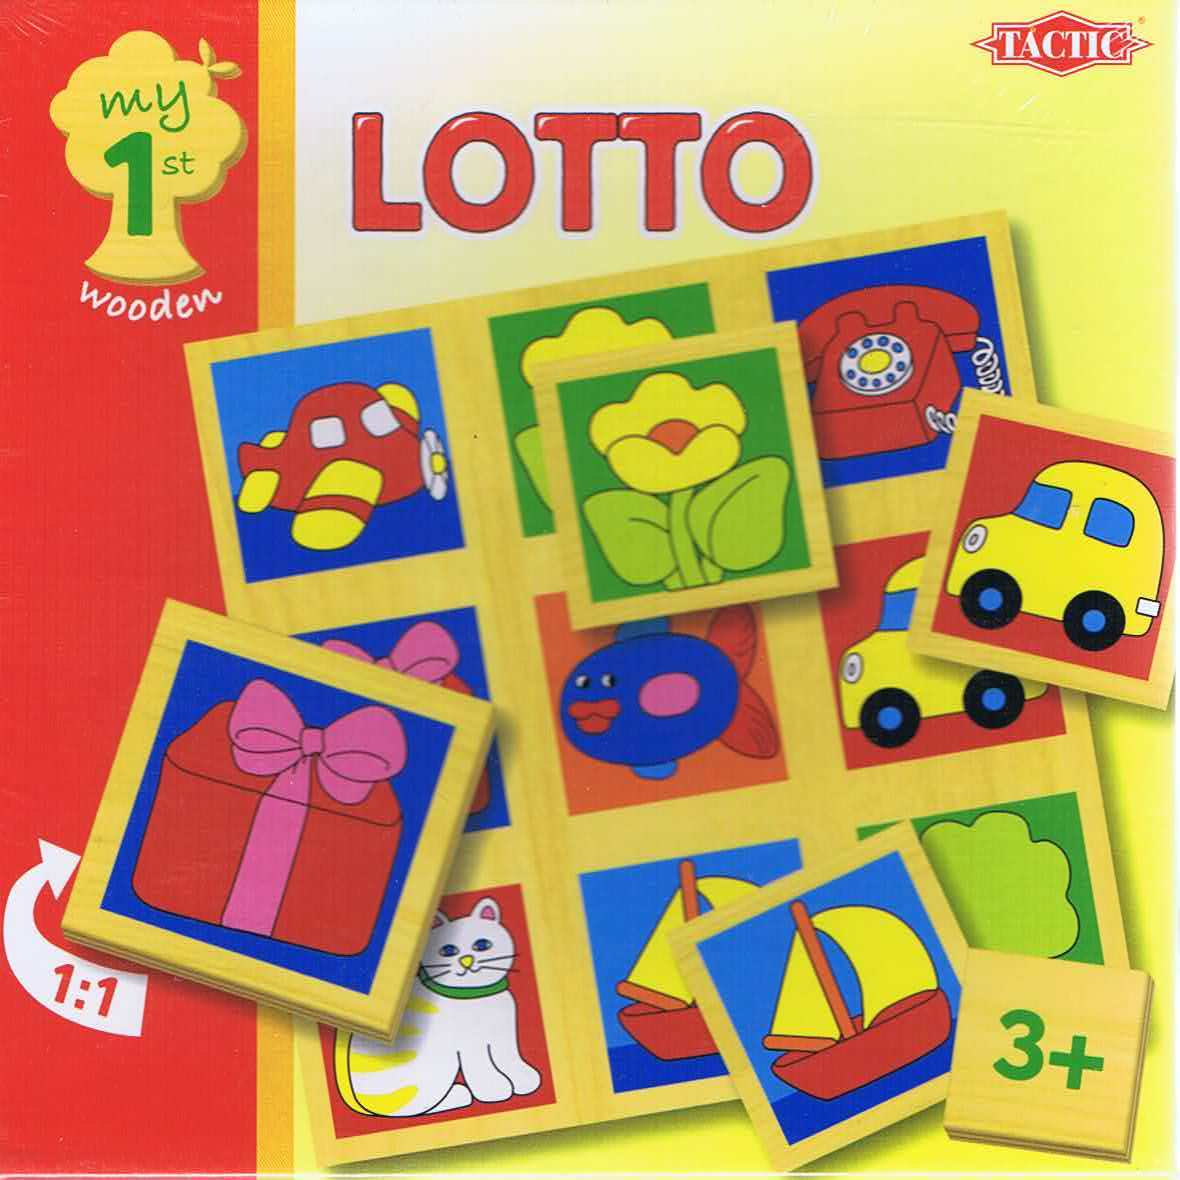 Lotto, my 1st wooden